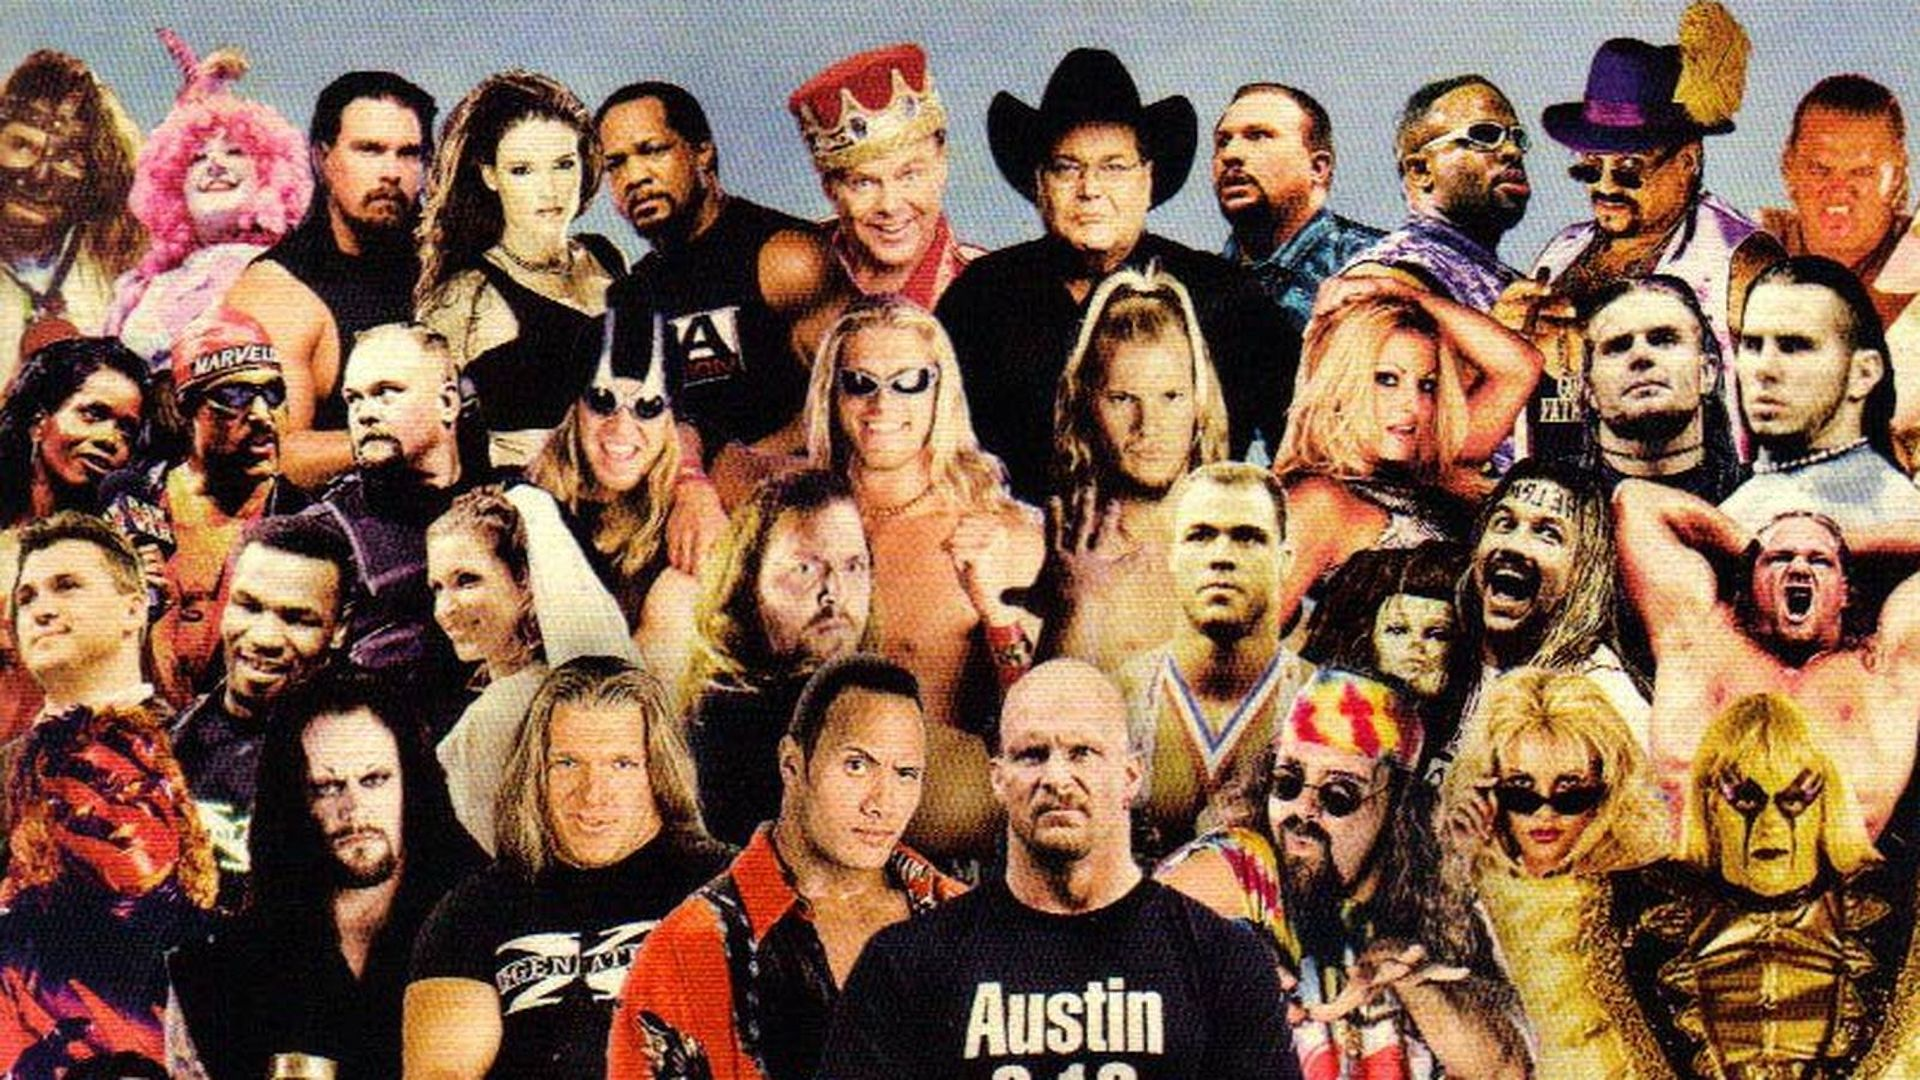 A collection of WWE Attitude era wrestlers.